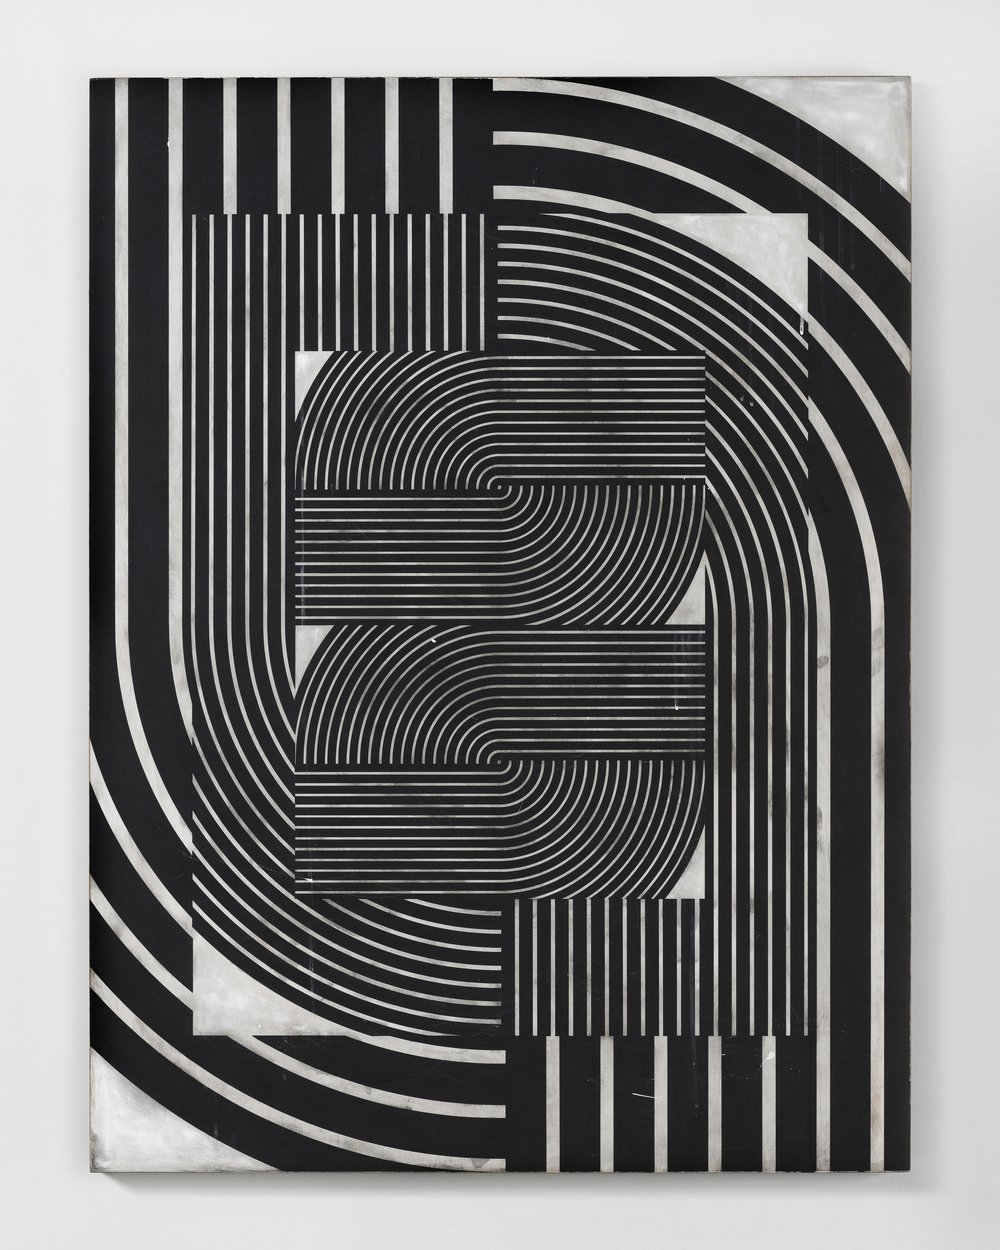 Davide Balliano -  Untitled_0061 , 2017,Plaster, gesso & lacquer on wood, 48 x 36 inches.Image courtesy Pablo's Birthday.